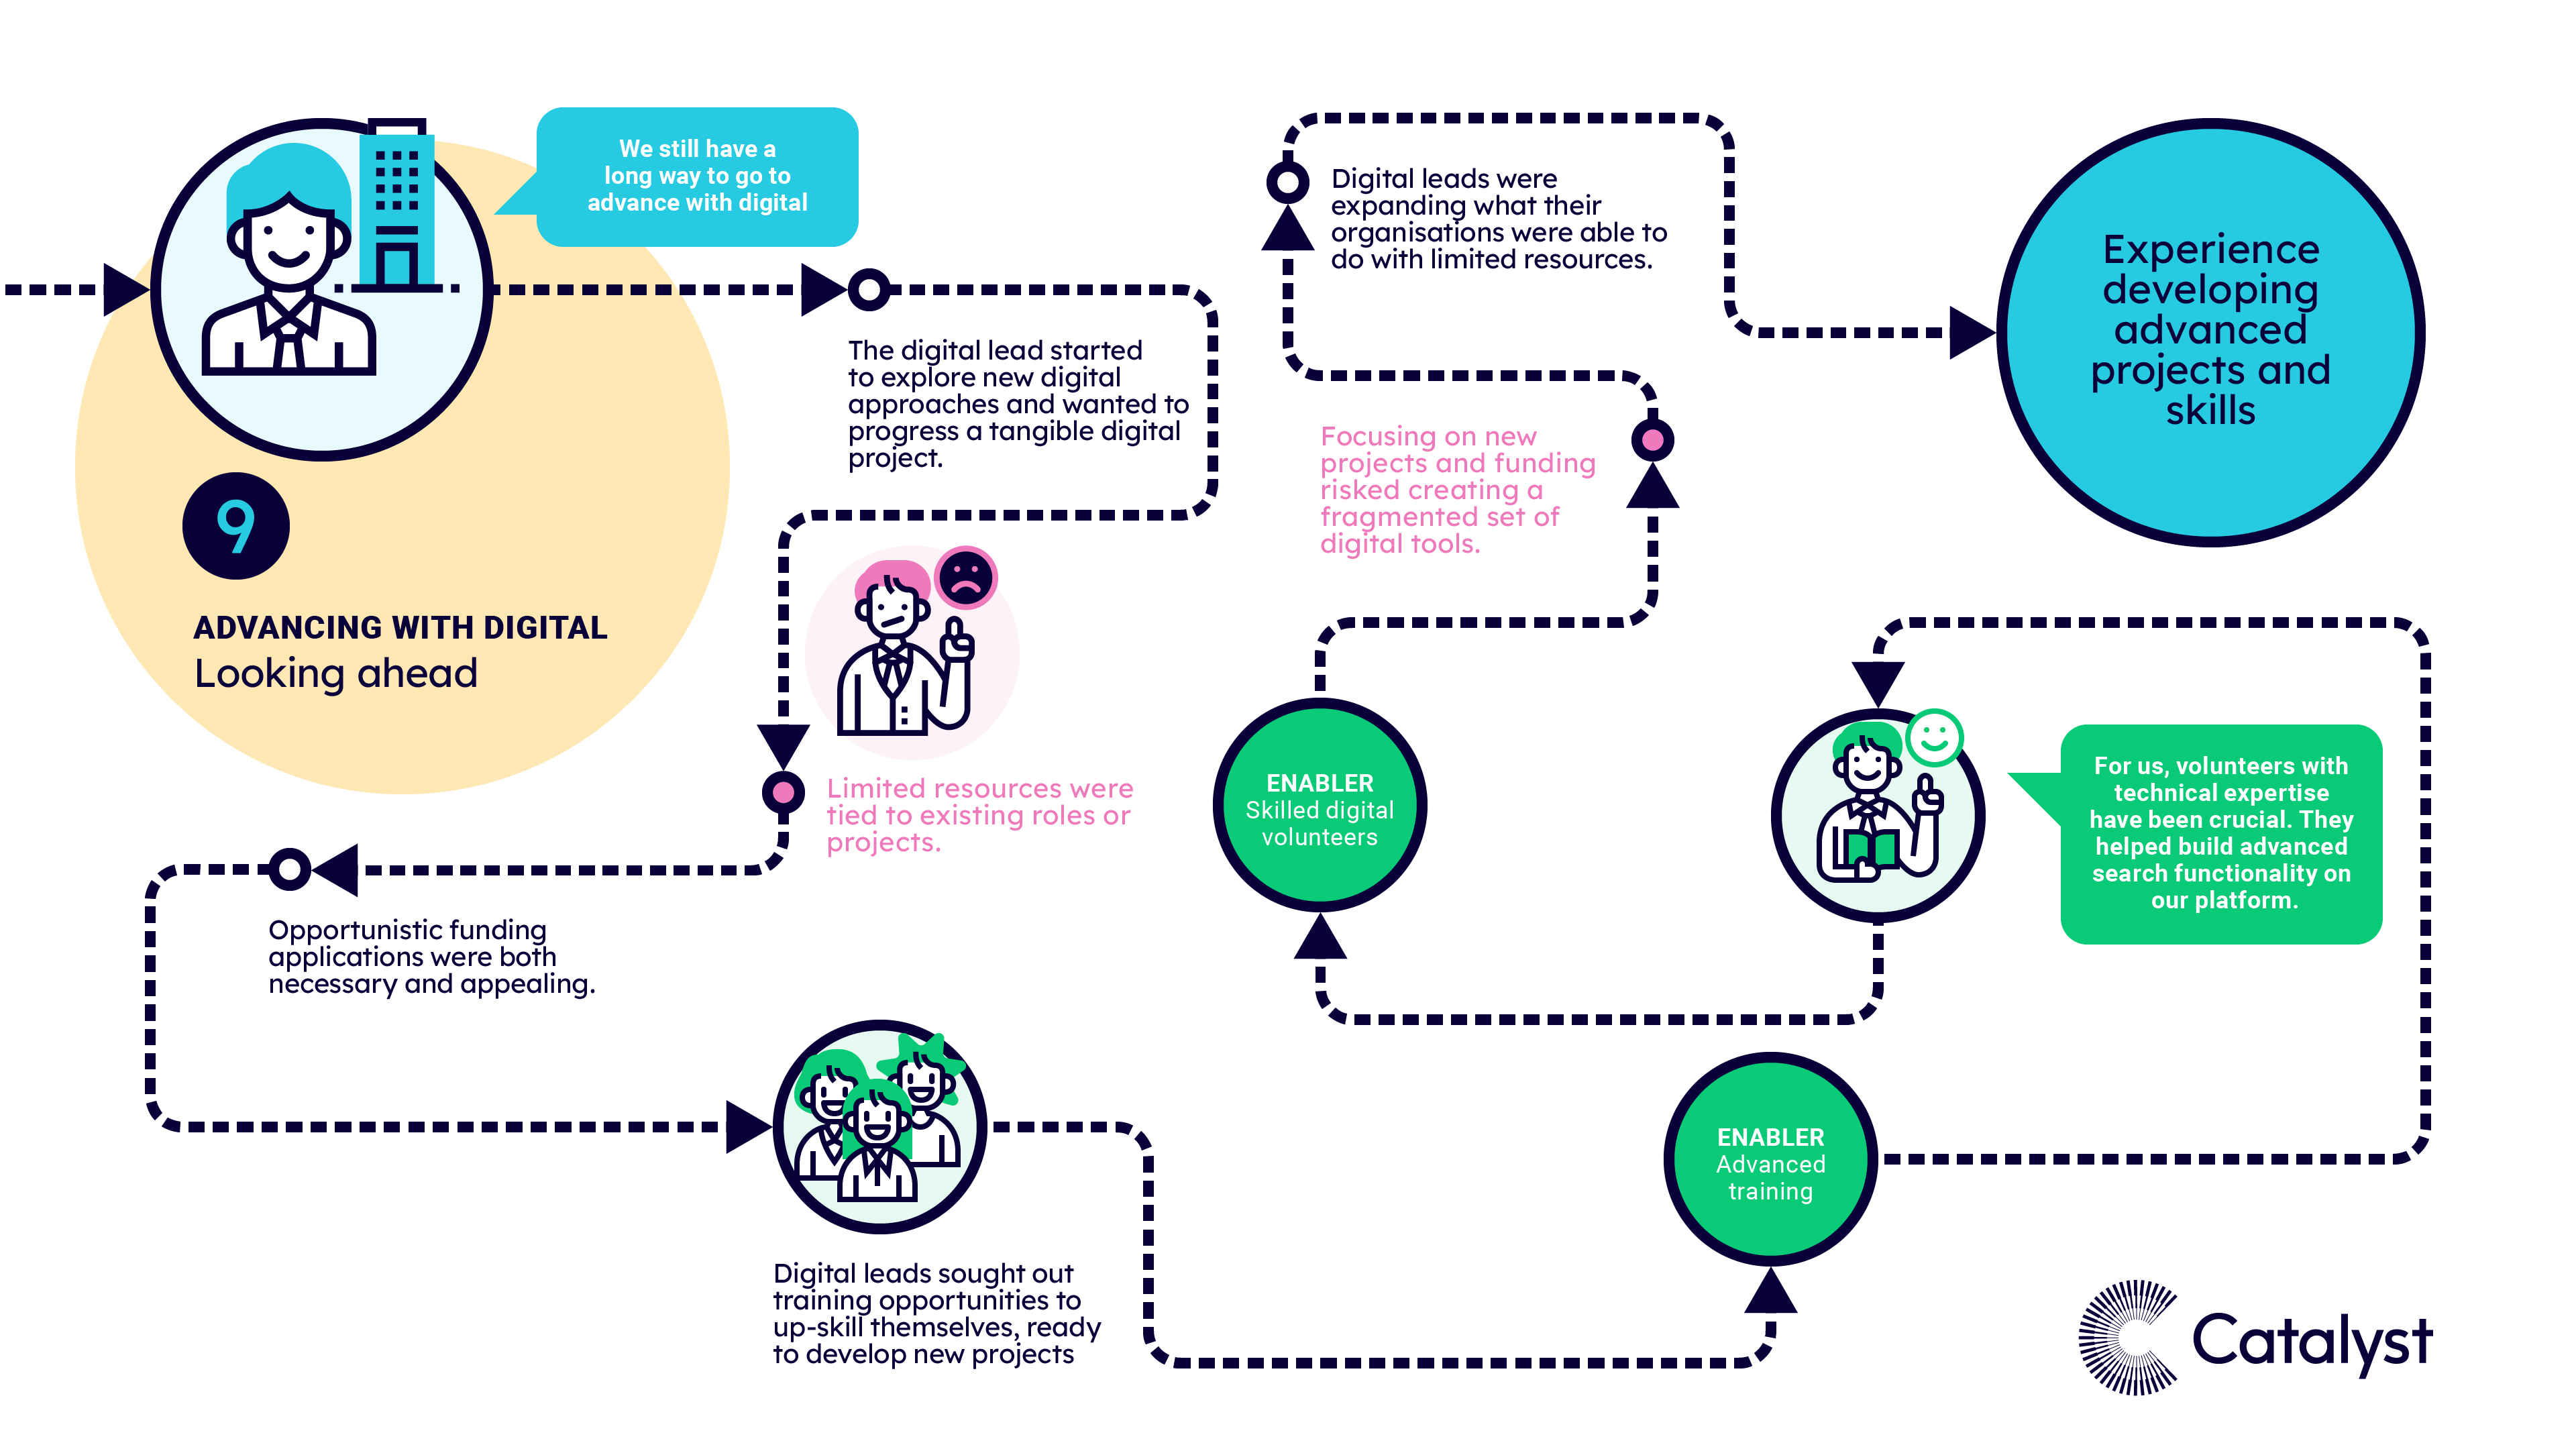 A visual map of pattern 9, when charities were advancing with digital and looking ahead. The text highlights the most common experiences, risk factors, barriers and enablers at this stage of the journey.